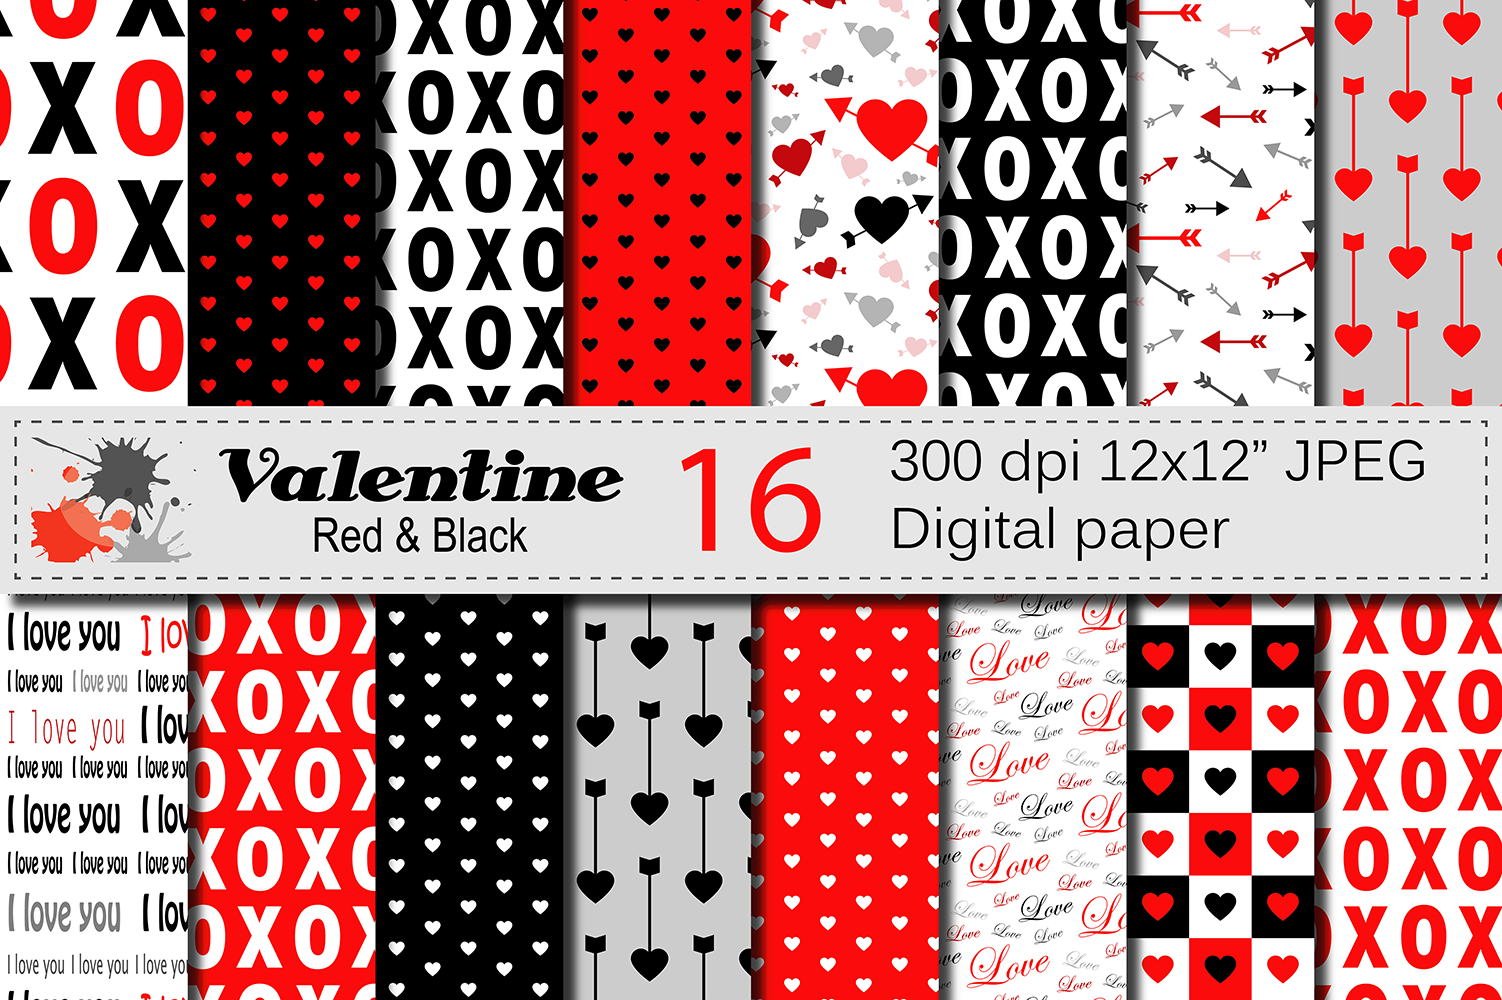 Red and Black Valentine Digital Paper Pack with Hearts and Arrows / Valentine Backgrounds Grafik Hintegründe von VR Digital Design